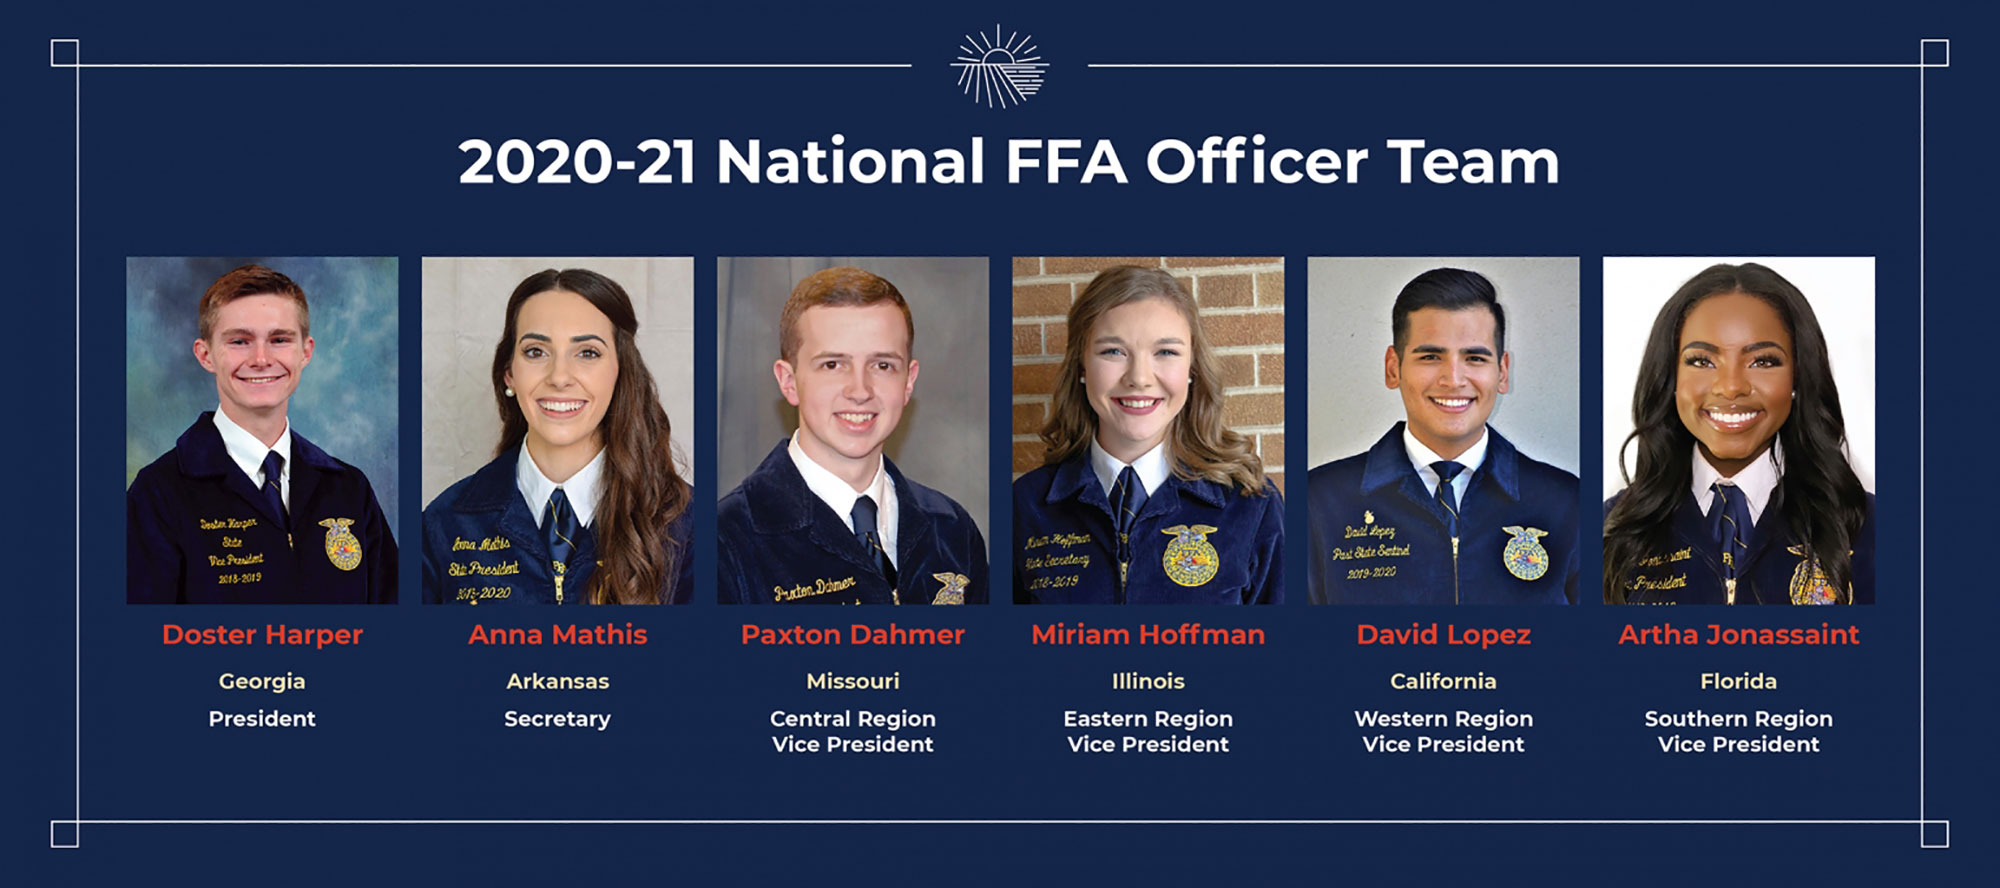 2020-21 National FFA Officers